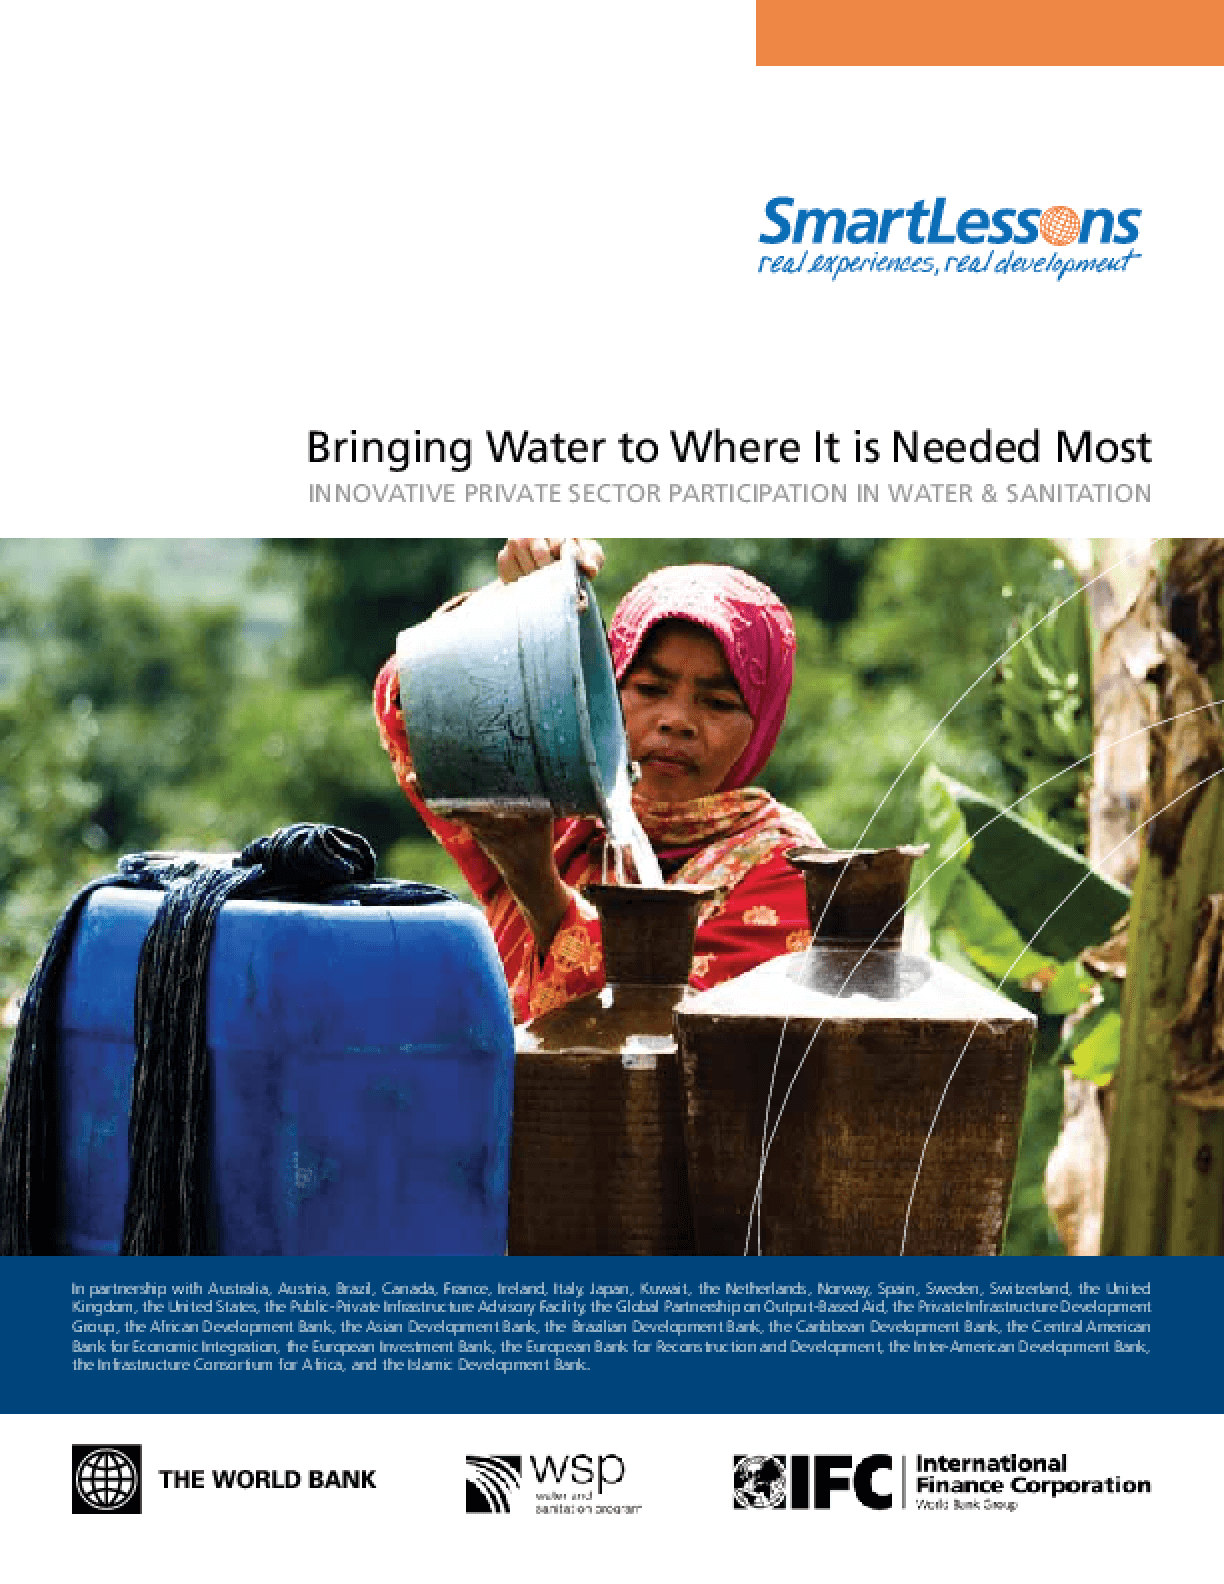 Bringing Water to Where It is Needed Most: Innovative Private Sector Participation in Water and Sanitation